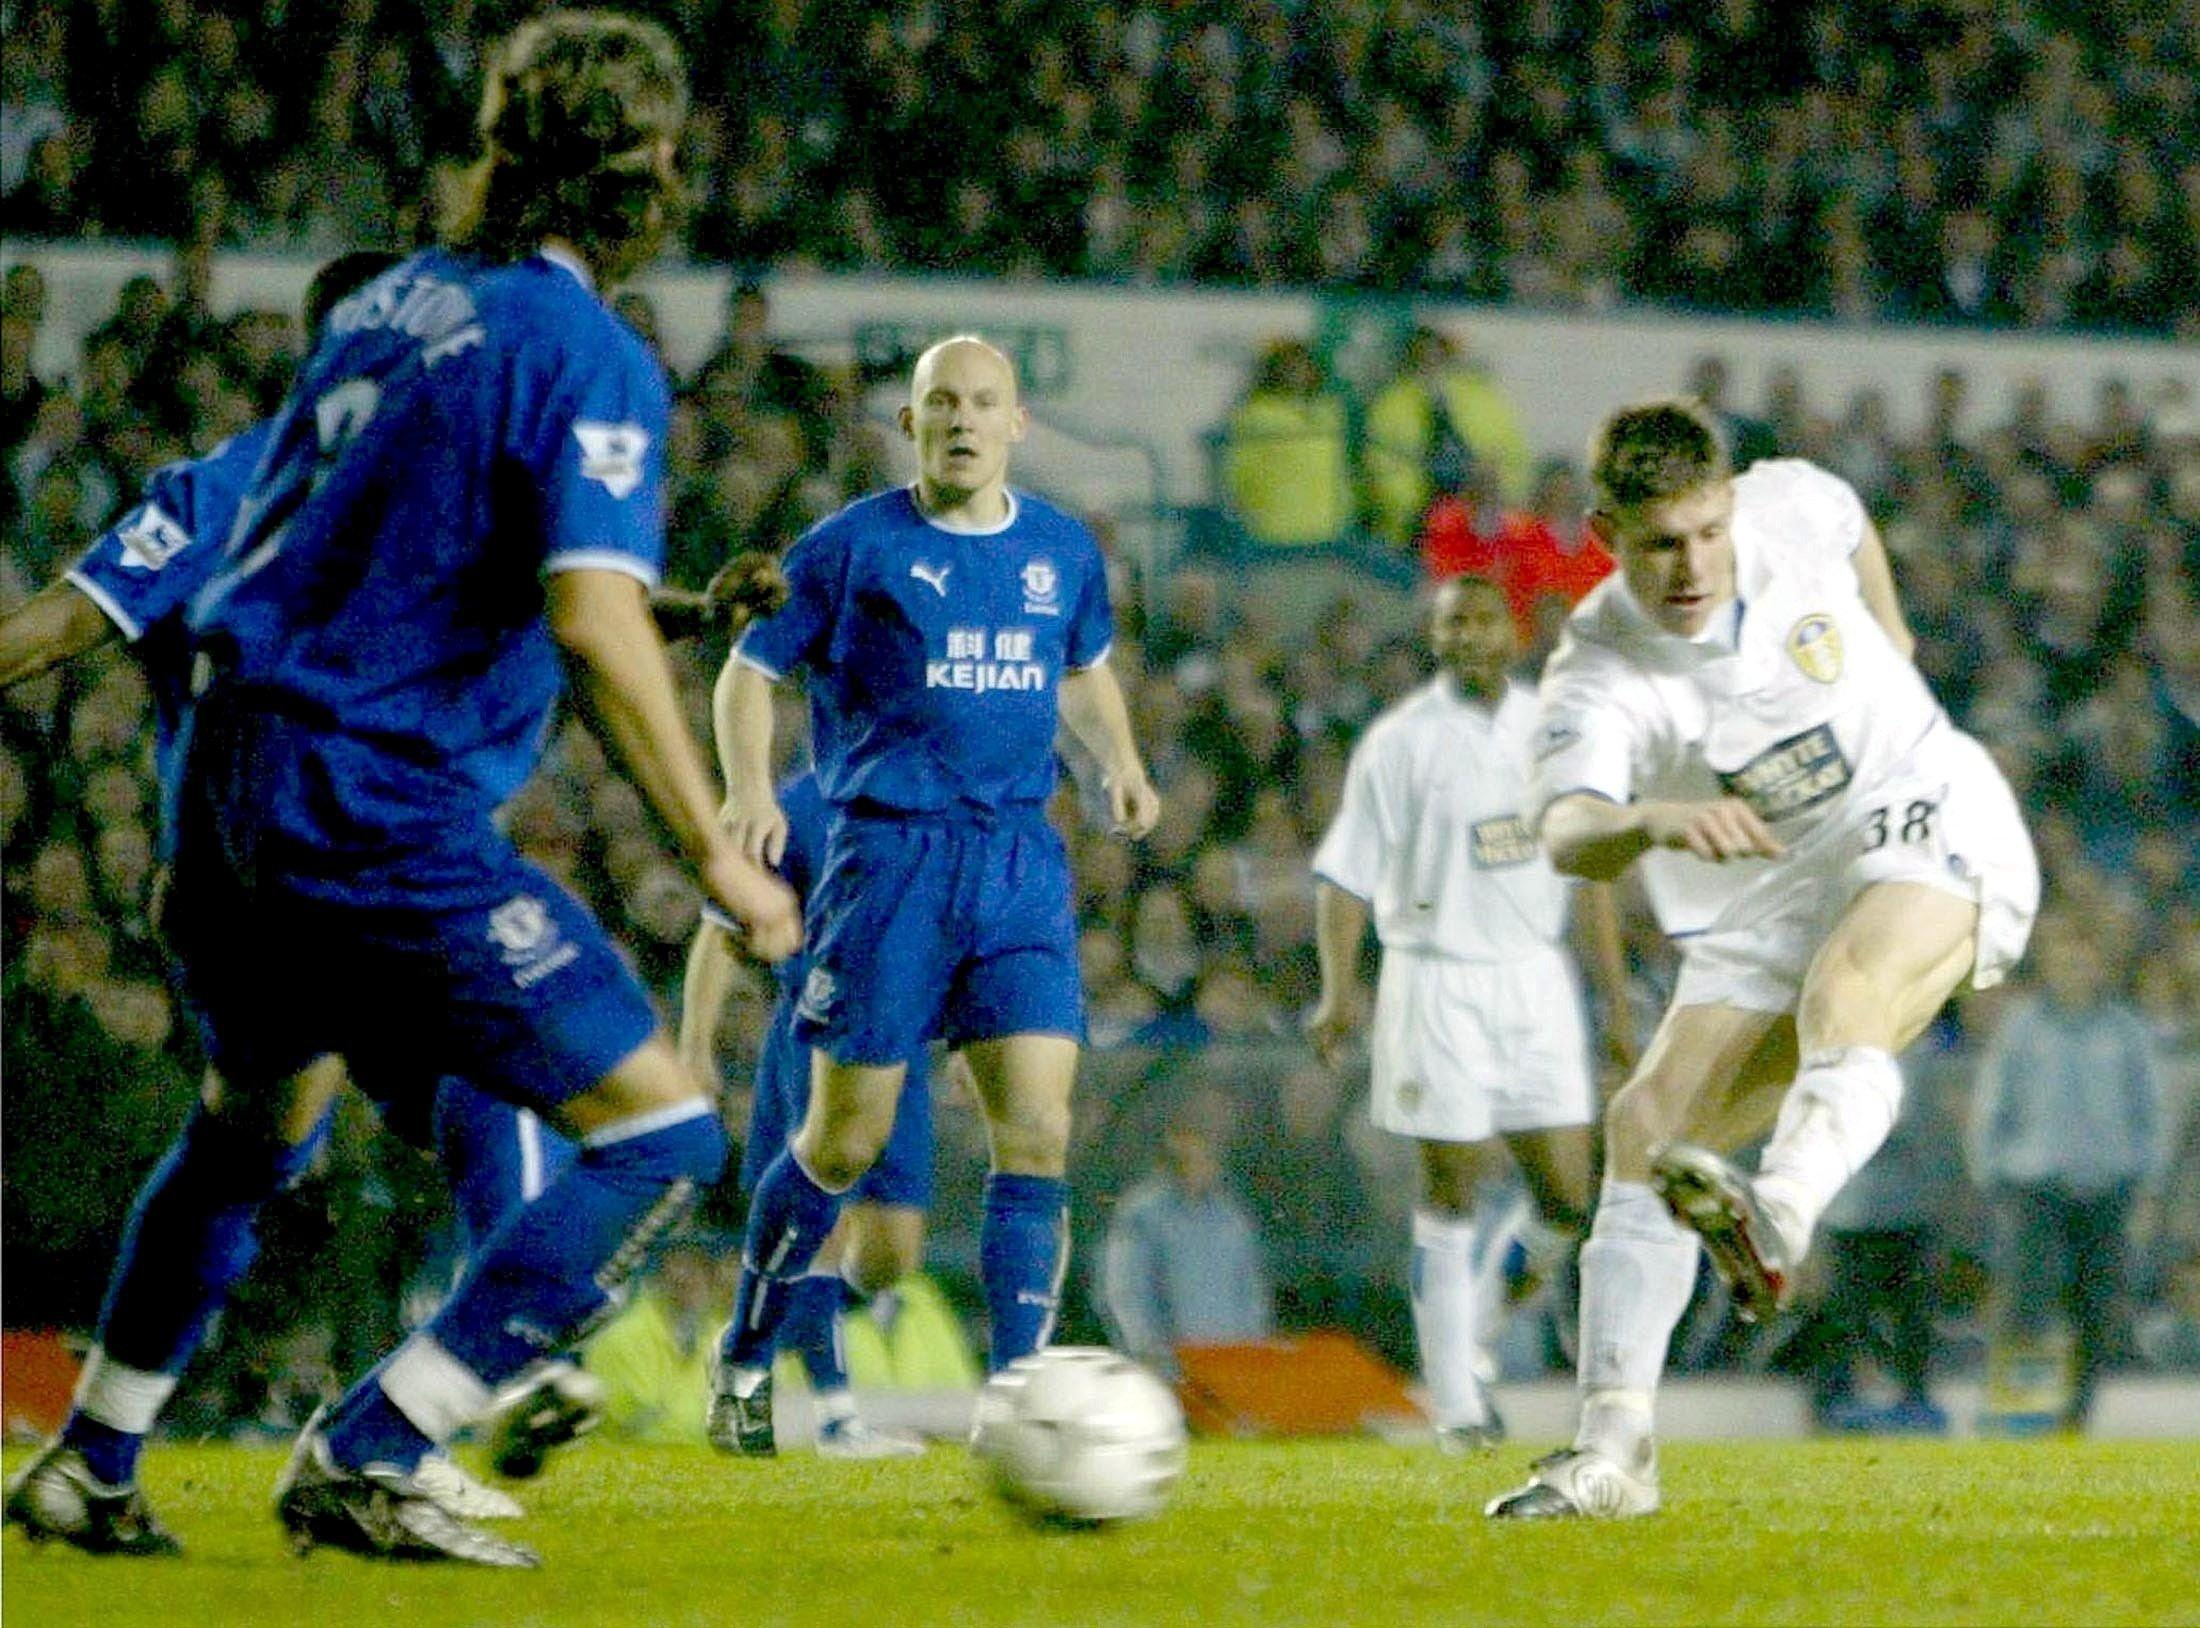 He burst onto the scene during the tail-end of Leeds spell in the Premier League